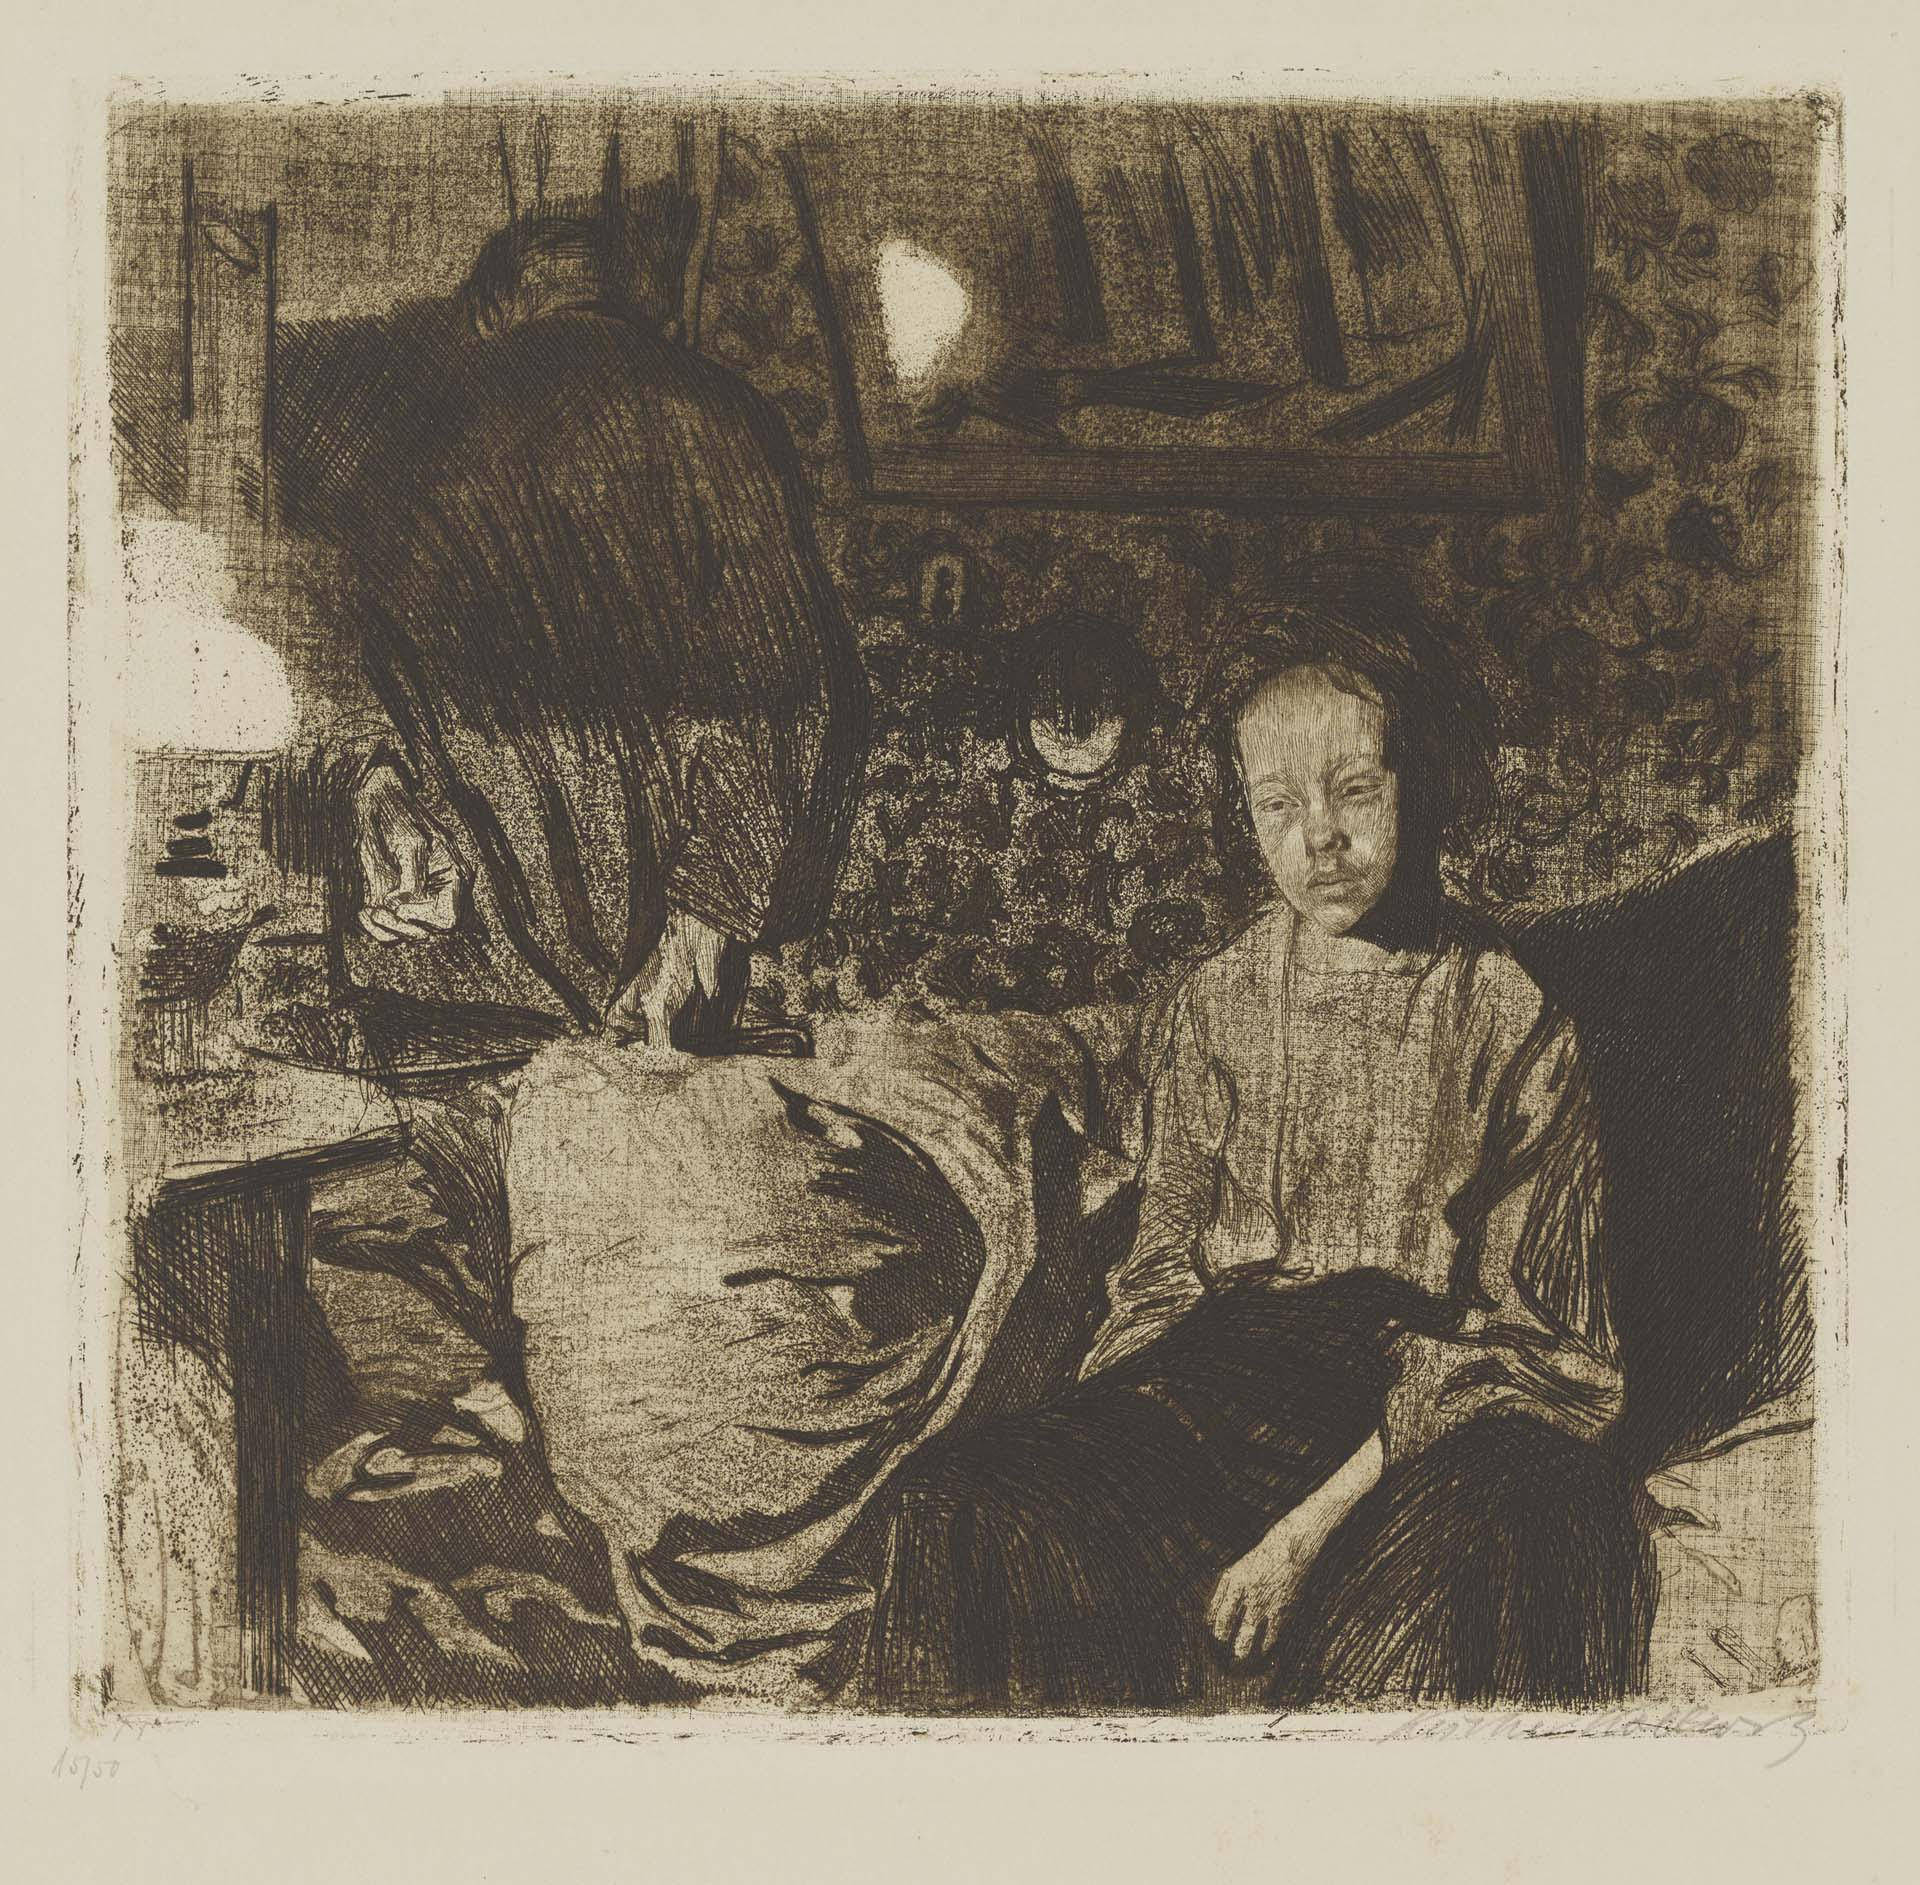 Käthe Kollwitz, Young Couple, 1904?, line etching, sandpaper, reservage and soft ground with imprint of fabric, Kn 83 III c, Cologne Kollwitz Collection © Käthe Kollwitz Museum Köln